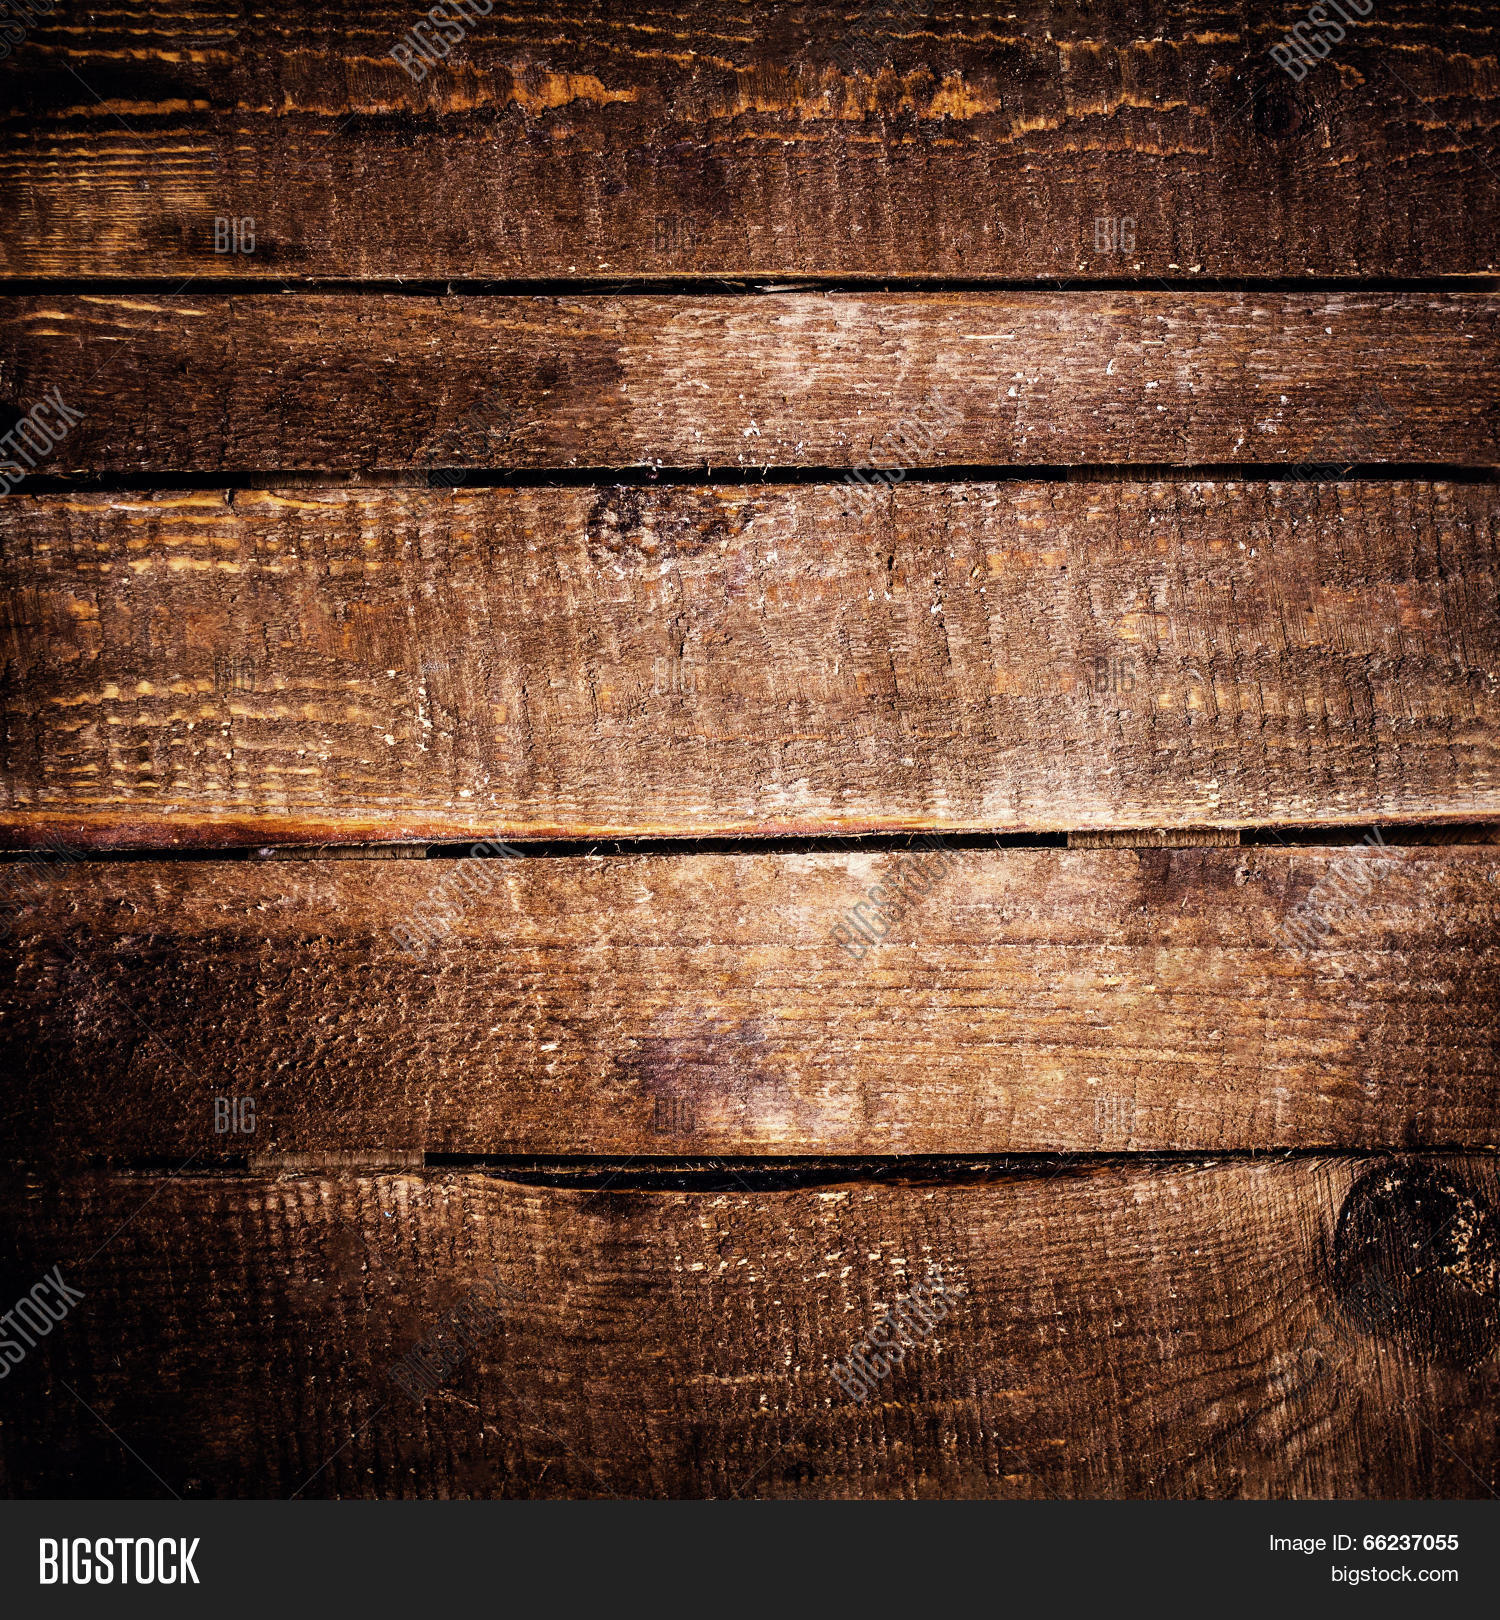 black background aged wood texture seamless background